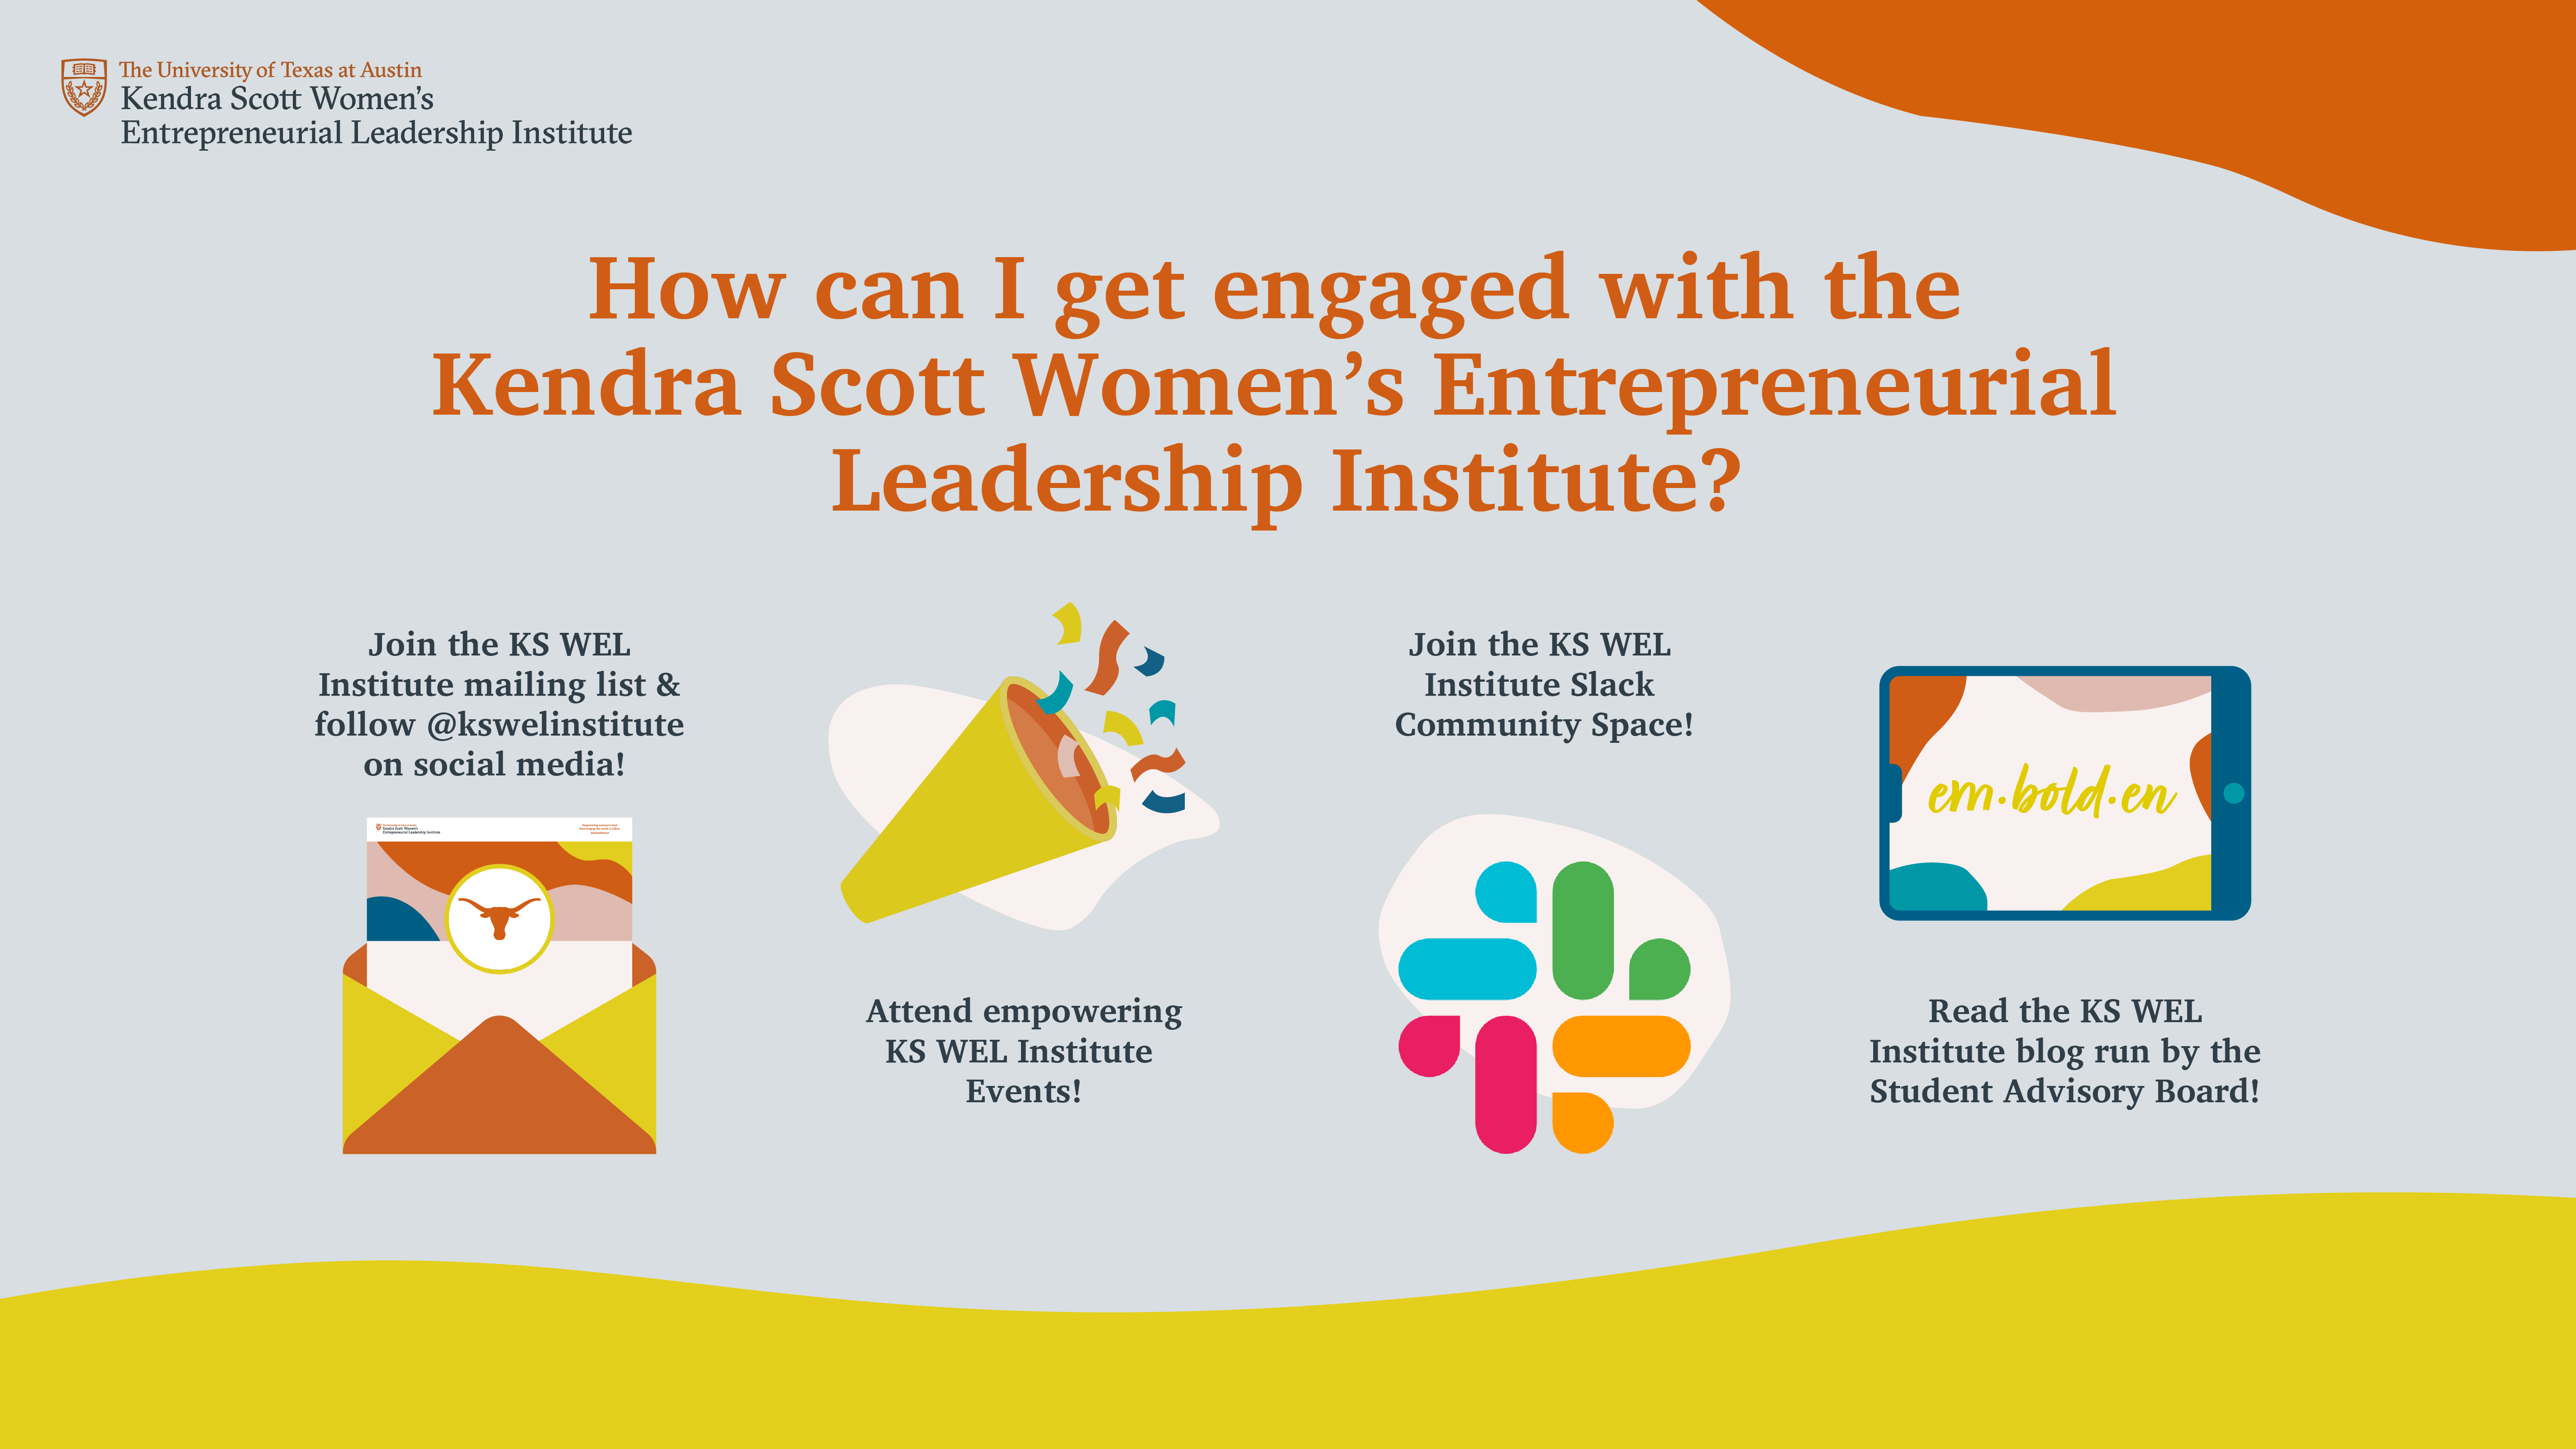 How can I get engaged with the Kendra Scott Women's Entrepreneurial Leadership Institute?